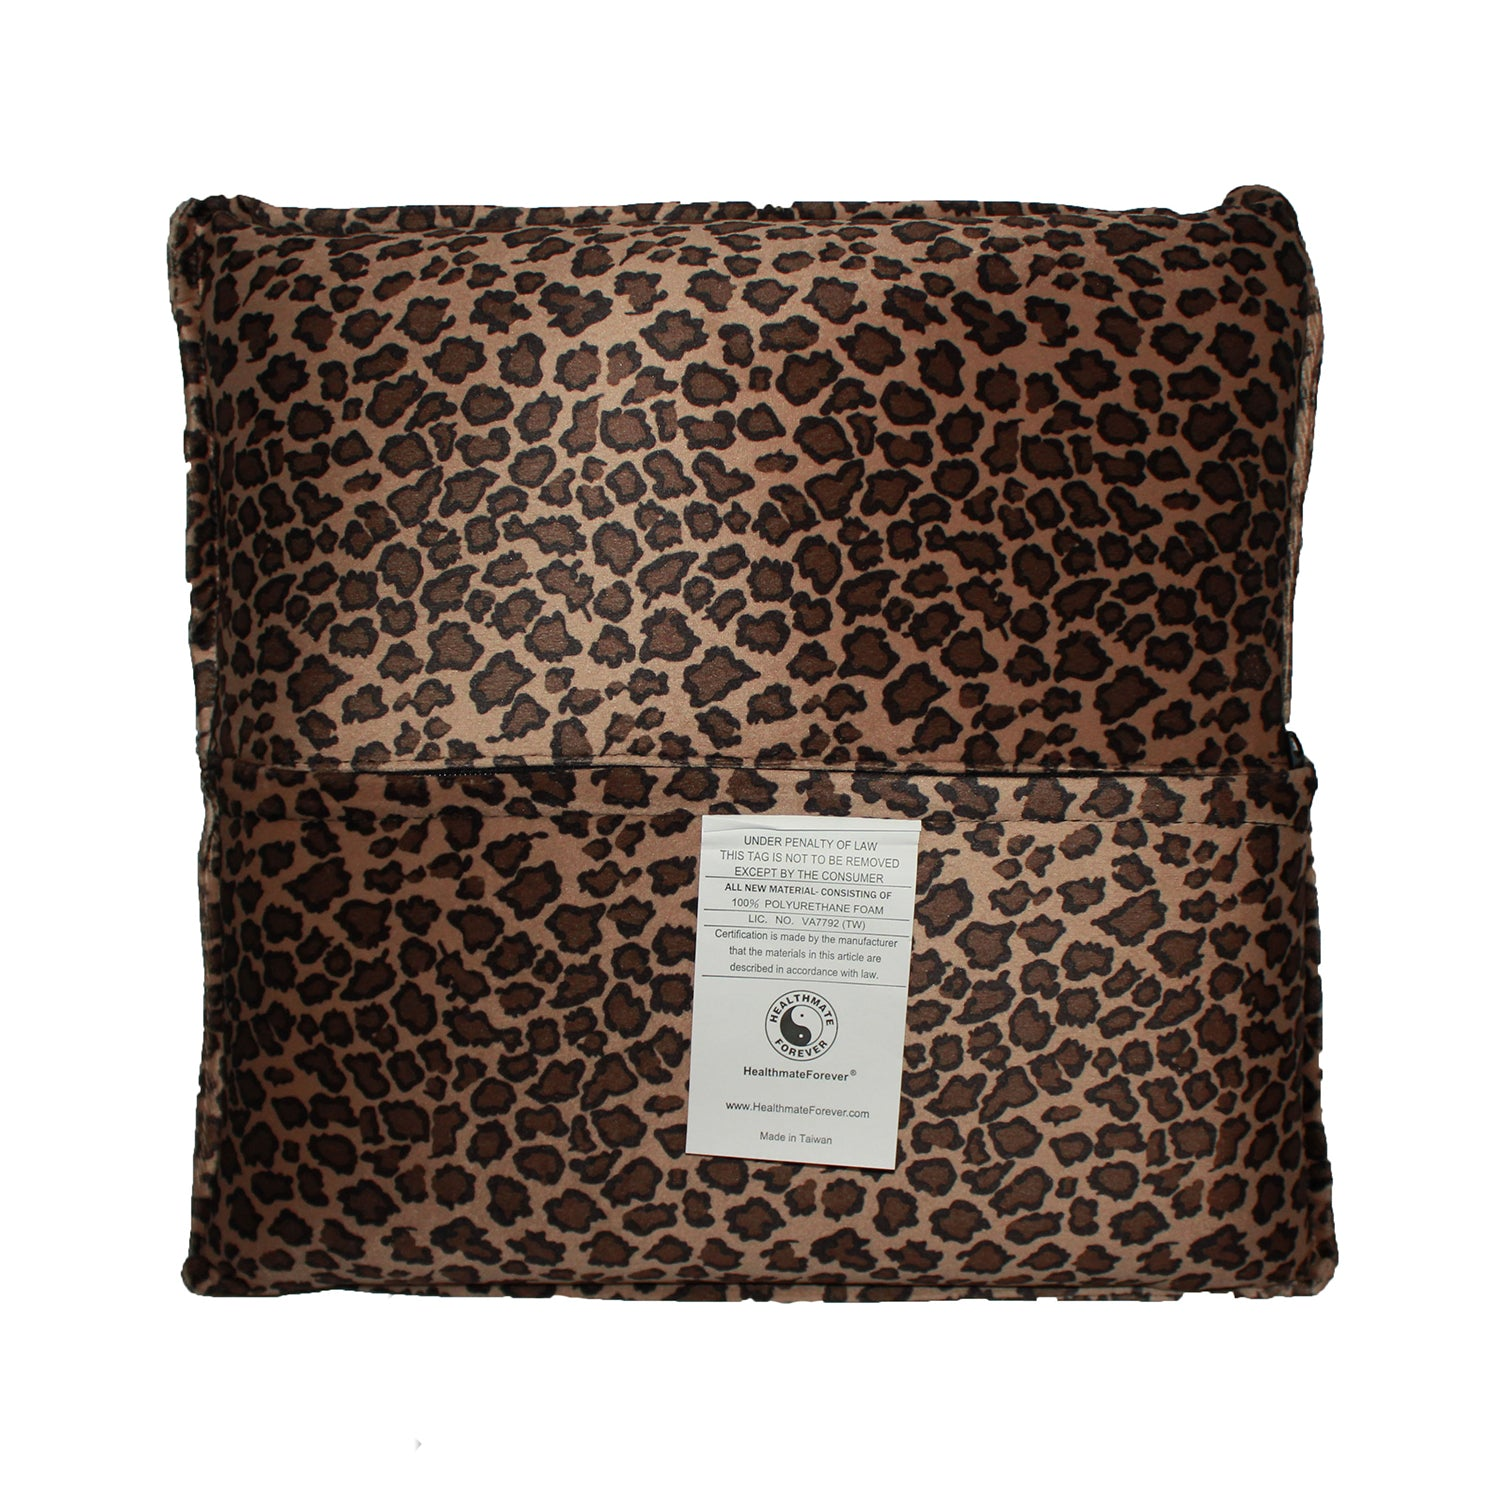 Pressure Activated Massage Pillow Small Leopard - HealthmateForever